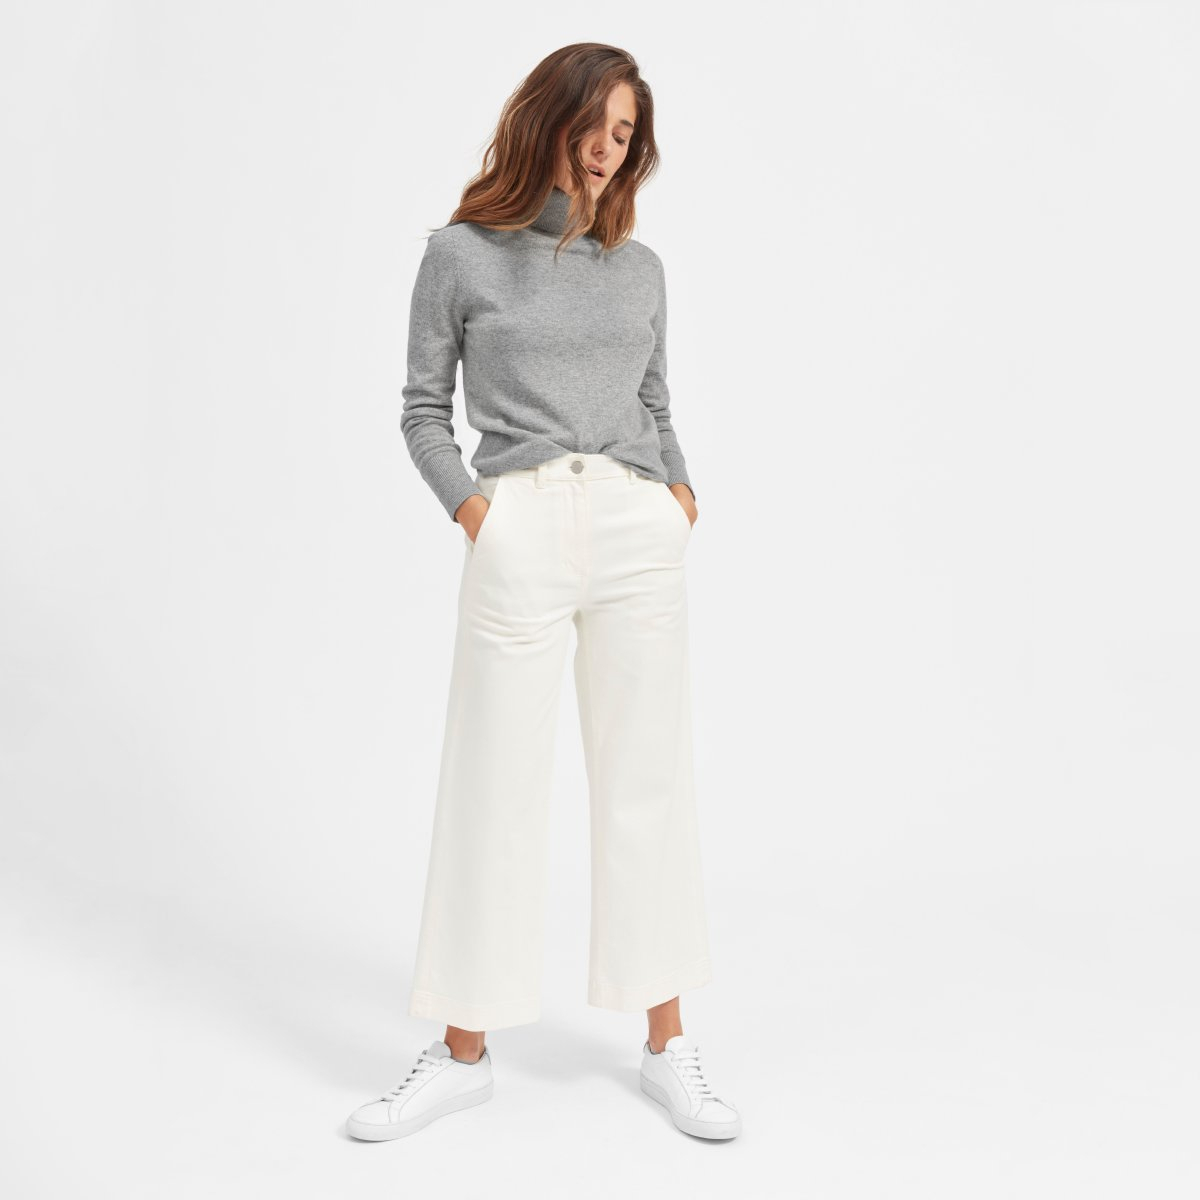 Everlane Cashmere Turtleneck, Heather Gray